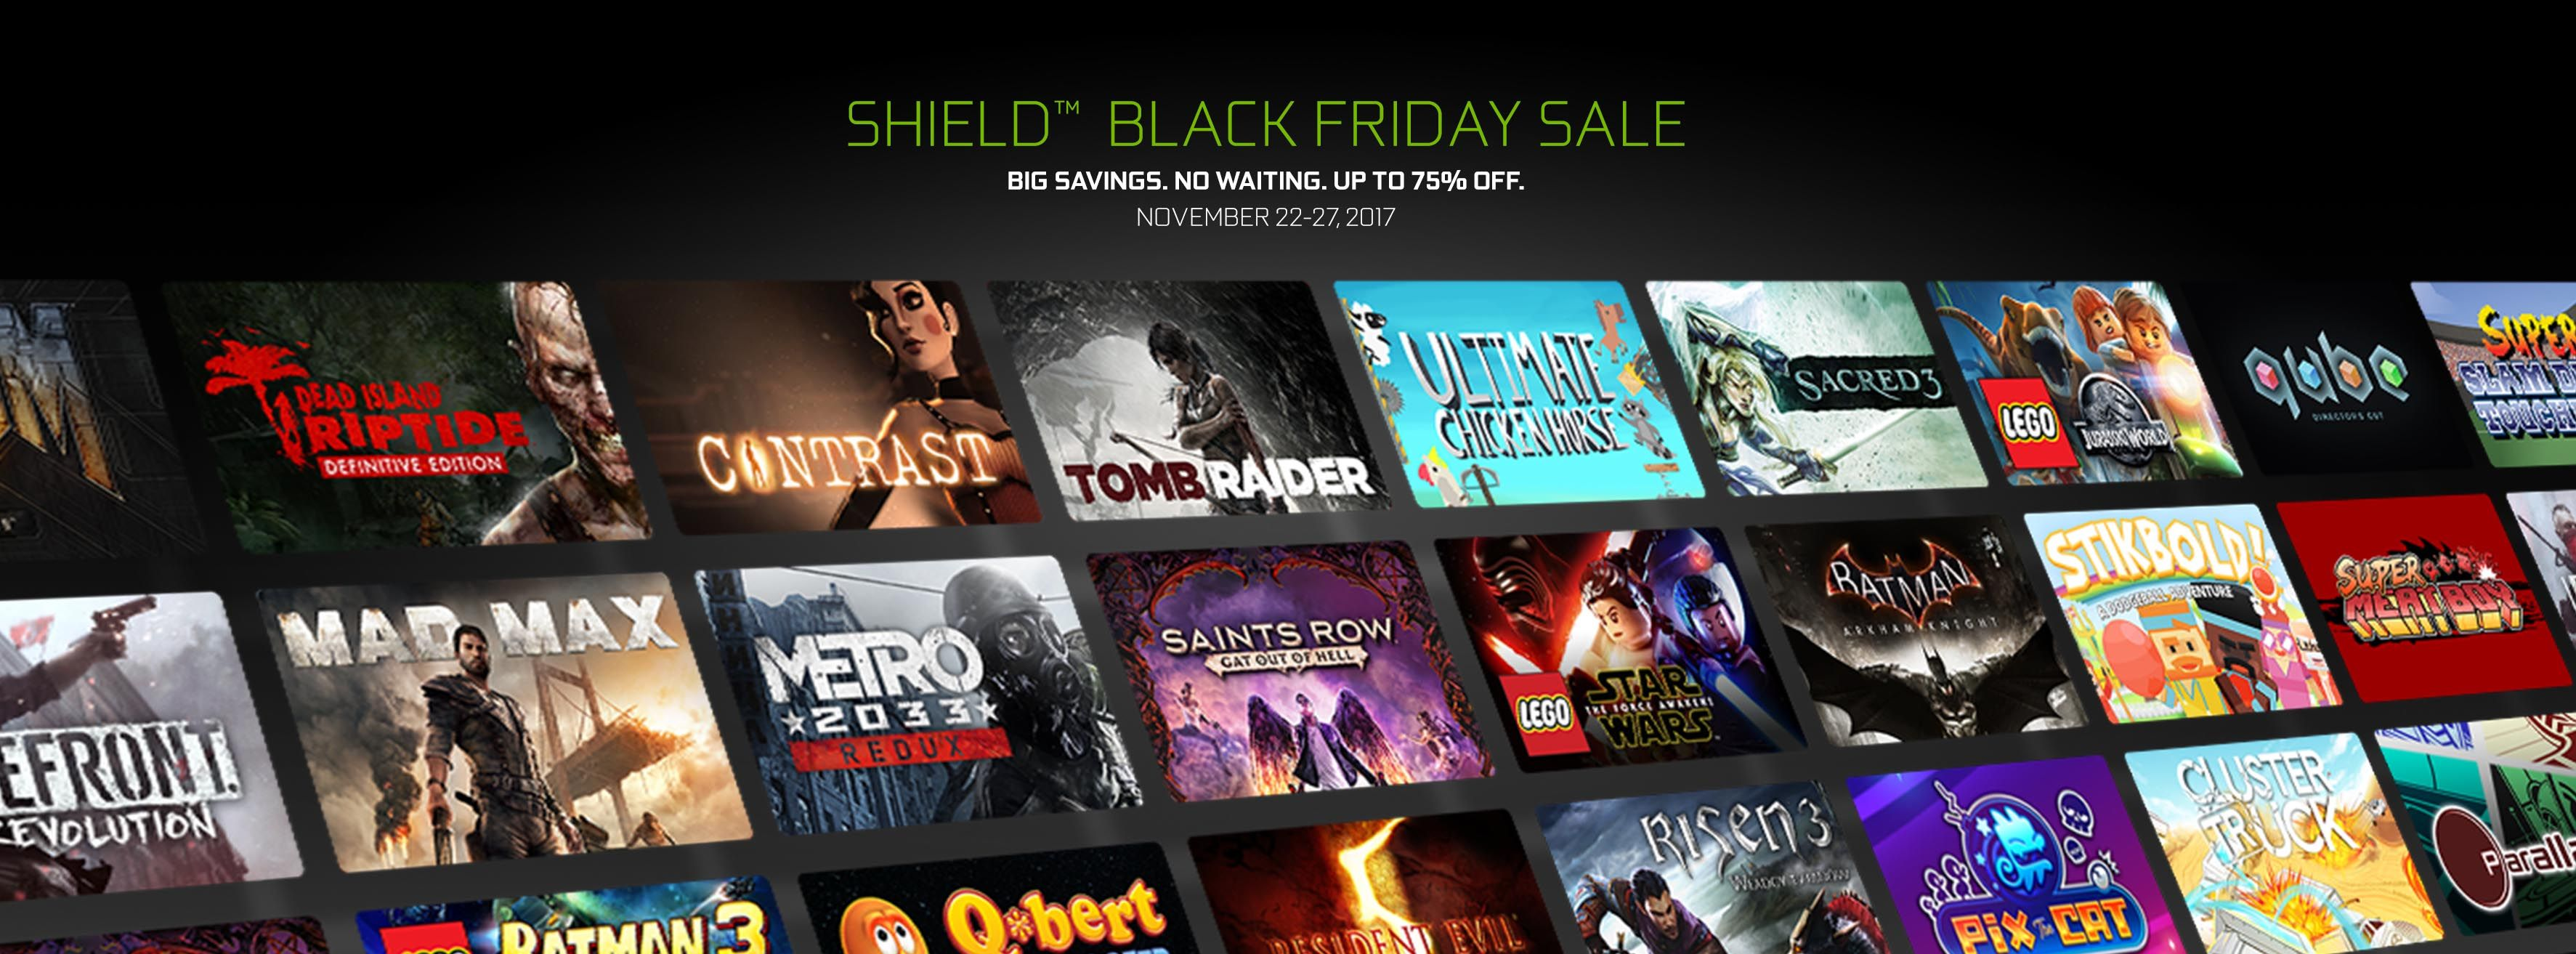 NVIDIA Shield anuncia Metal Gear Solid 3 y la llegada del Black Friday